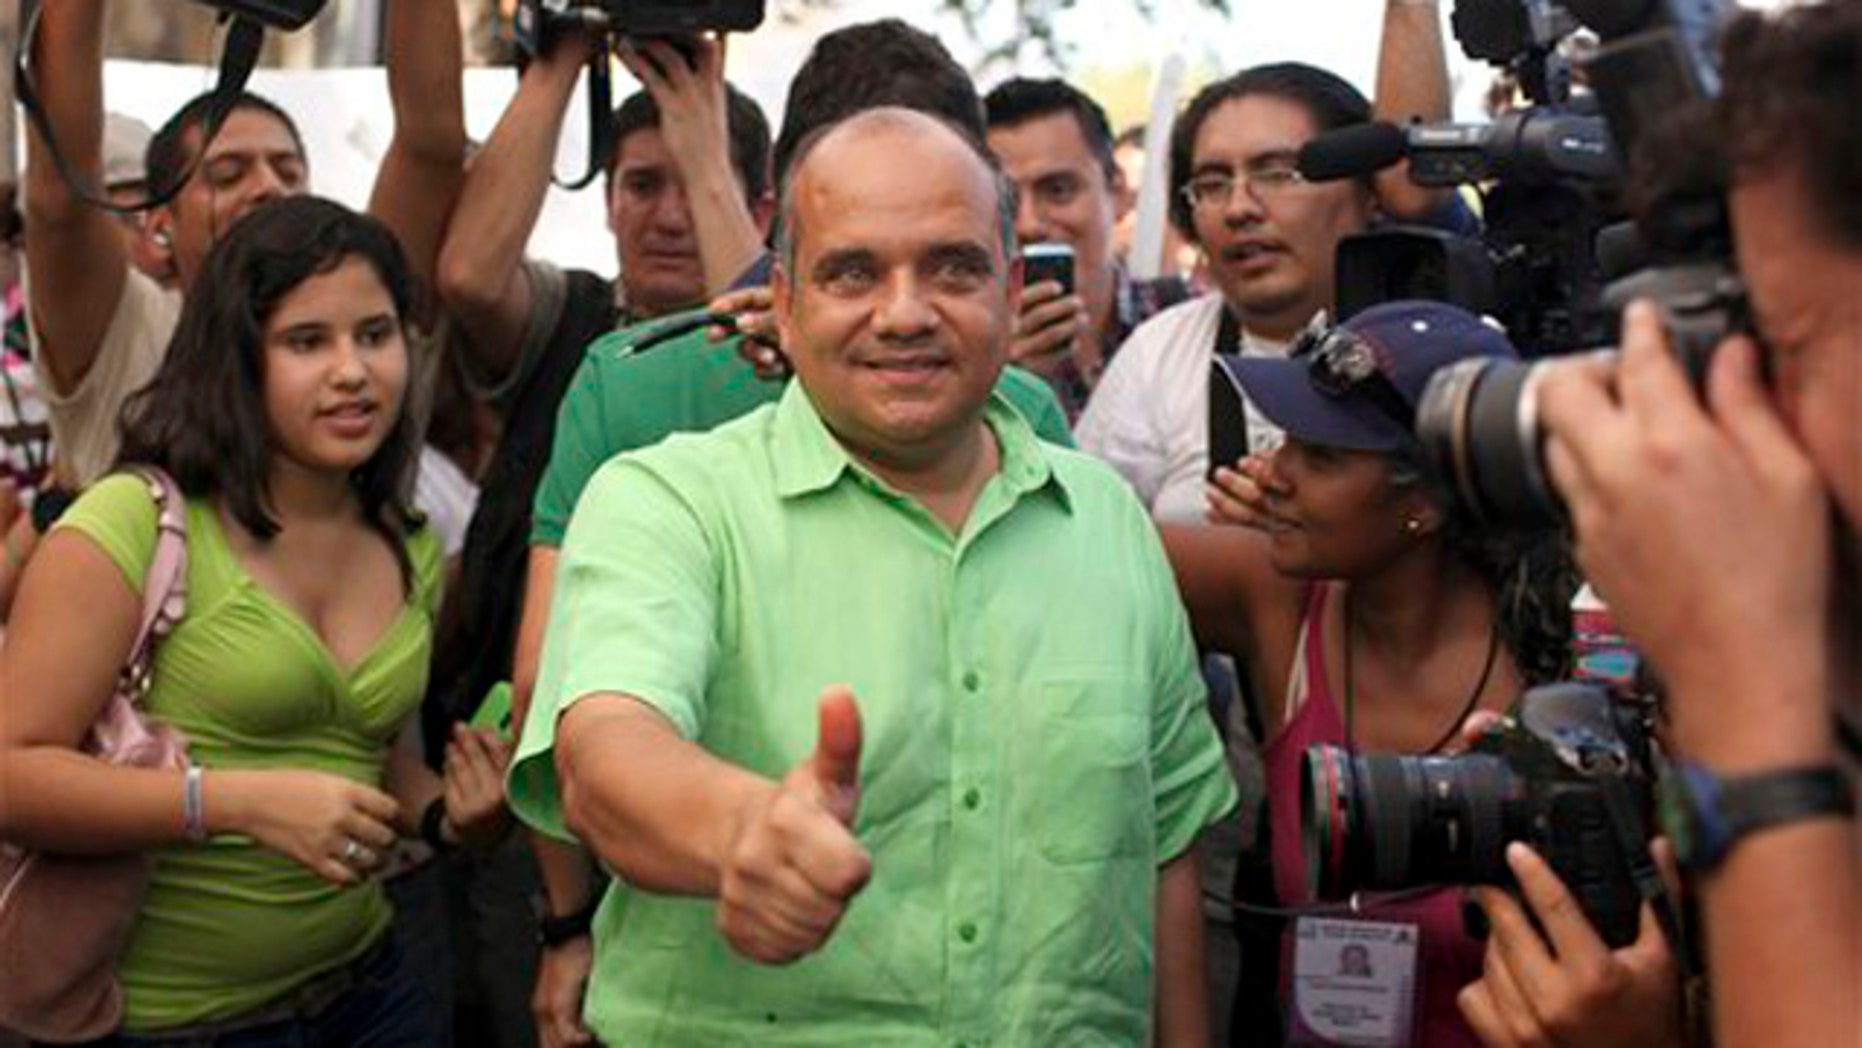 Jan. 30, 2011: Candidate for state governor Manuel Anorve, of the Institutional Revolutionary Party, PRI, center, gestures as he poses for photos after casting his vote in Acapulco, Mexico. Corruption scandals, political violence and the drug war shadow Sunday's gubernatorial election in the Pacific coast state of Guerrero, home to the resort city of Acapulco and a cartel battleground.